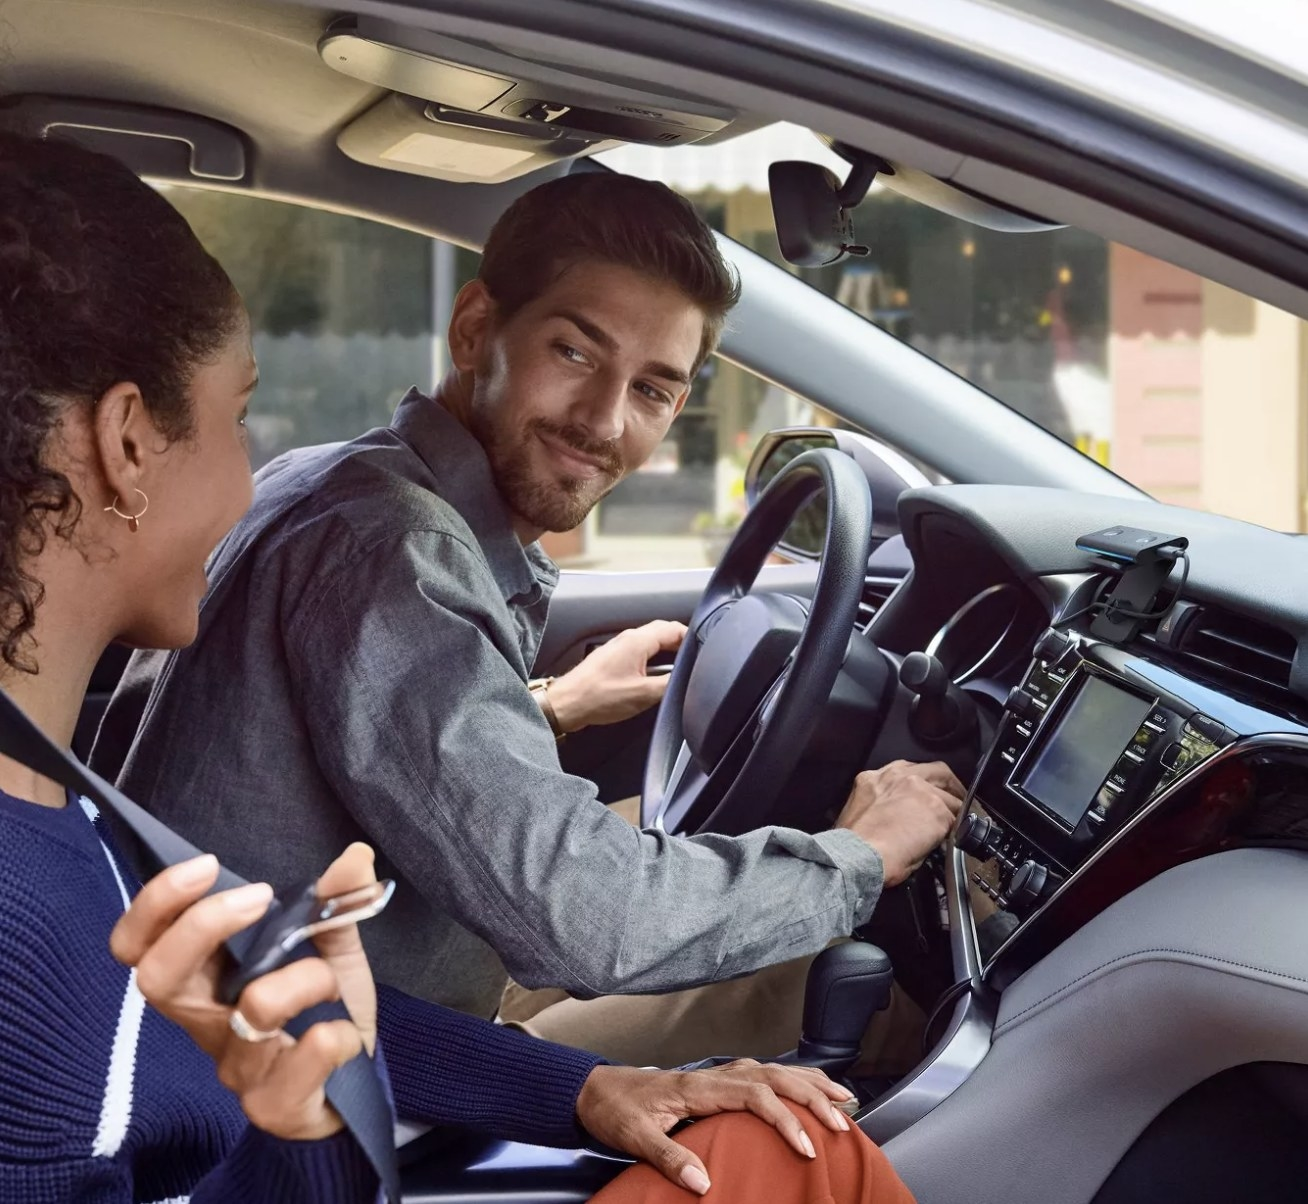 Two people in a car with an Amazon Echo Auto clipped to the car vents